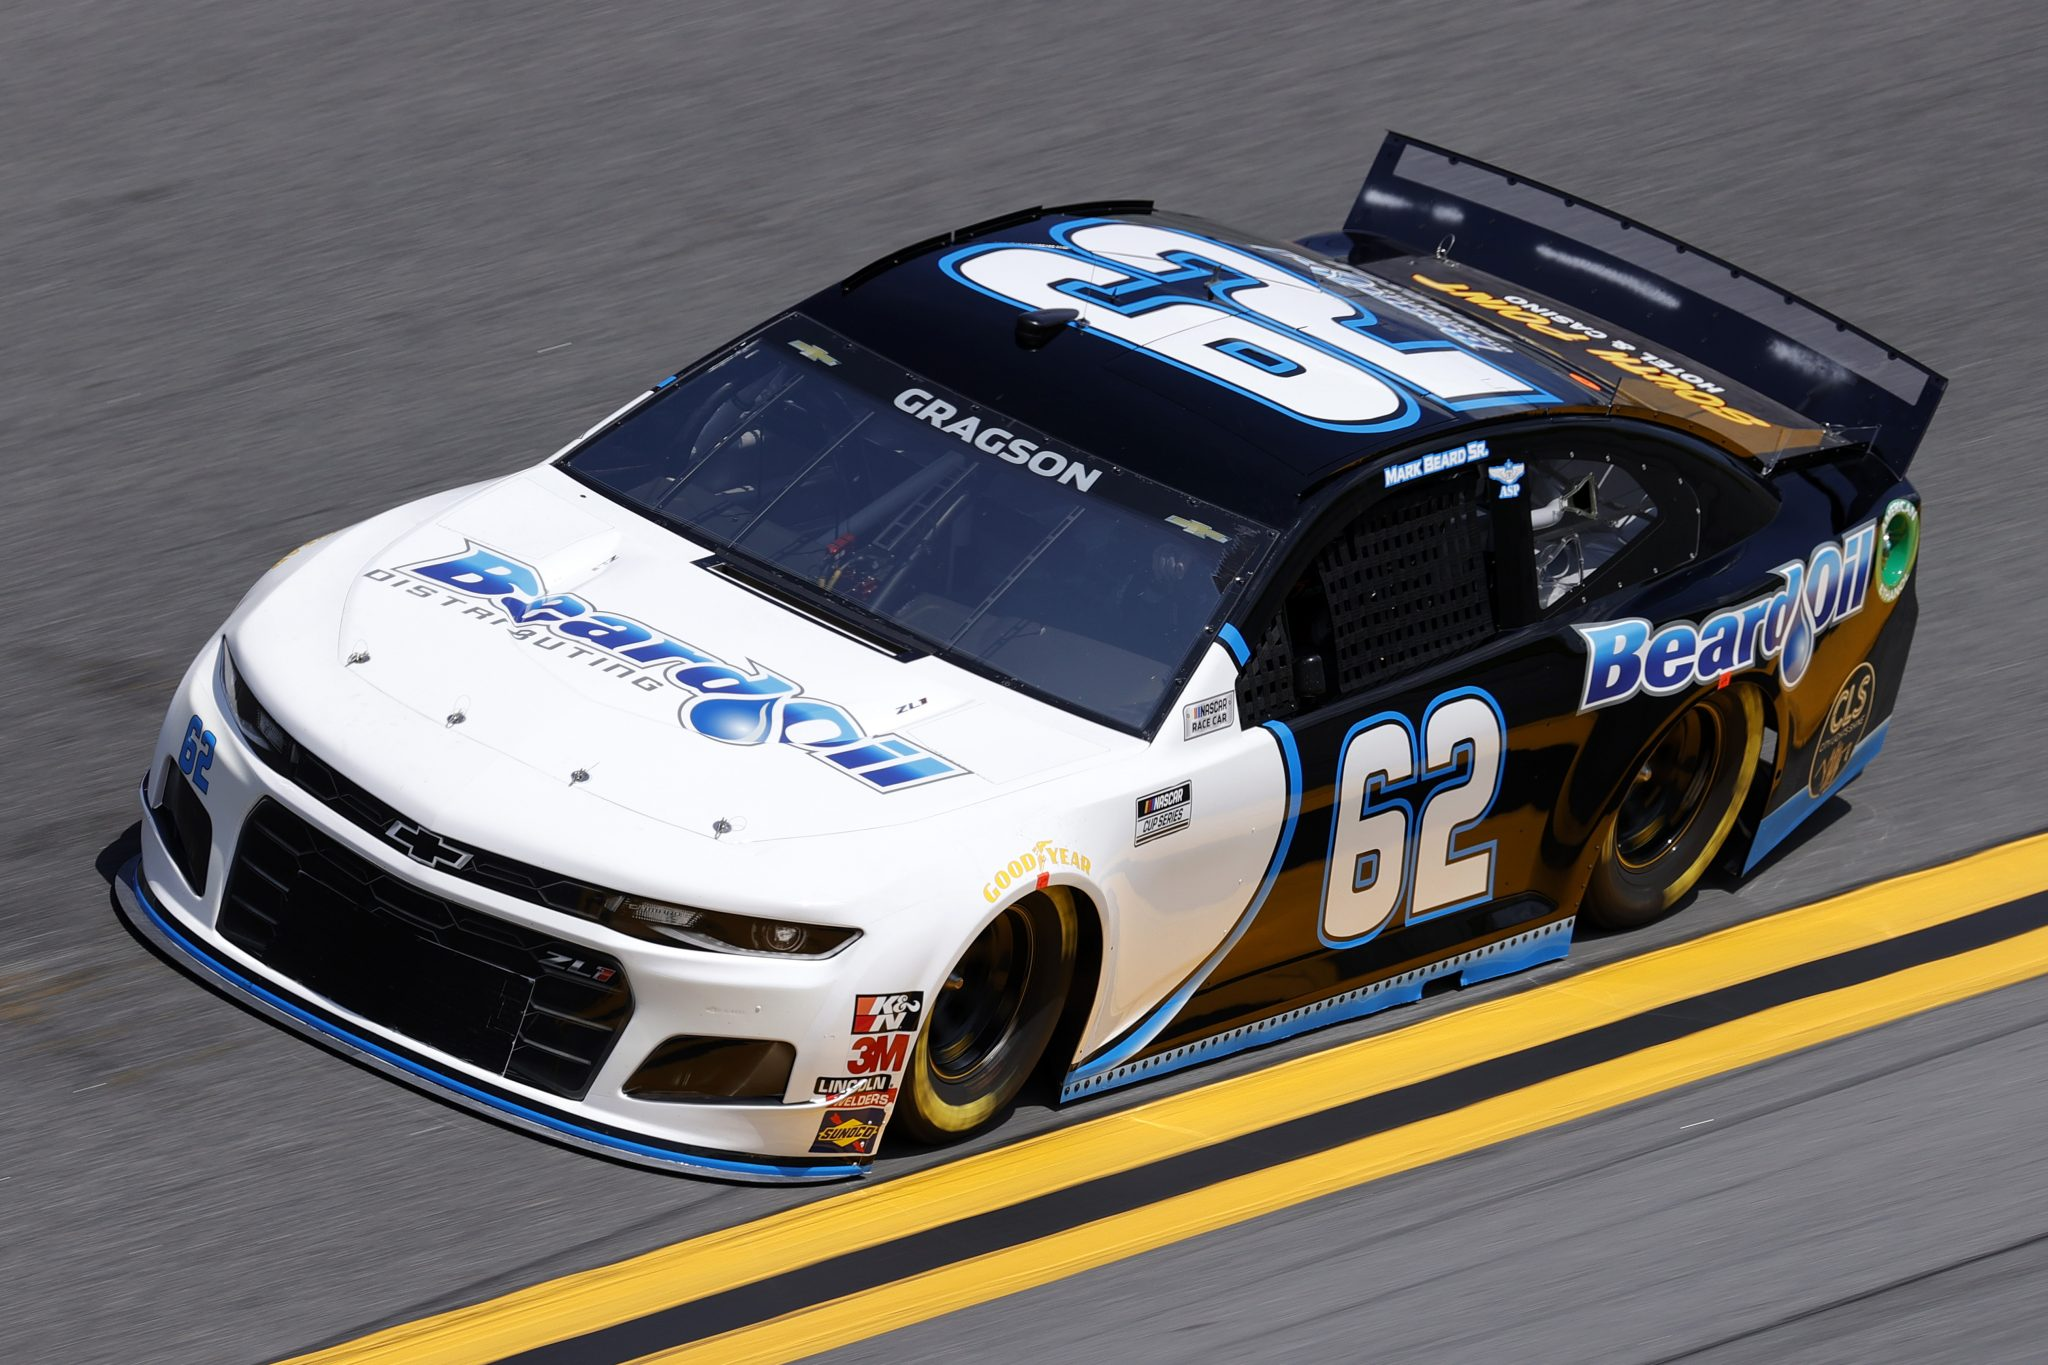 DAYTONA BEACH, FLORIDA - FEBRUARY 10: Noah Gragson, driver of the #62 Beard Motorsports/South Point Chevrolet, drives during practice for the NASCAR Cup Series 63rd Annual Daytona 500 at Daytona International Speedway on February 10, 2021 in Daytona Beach, Florida. (Photo by Jared C. Tilton/Getty Images) | Getty Images